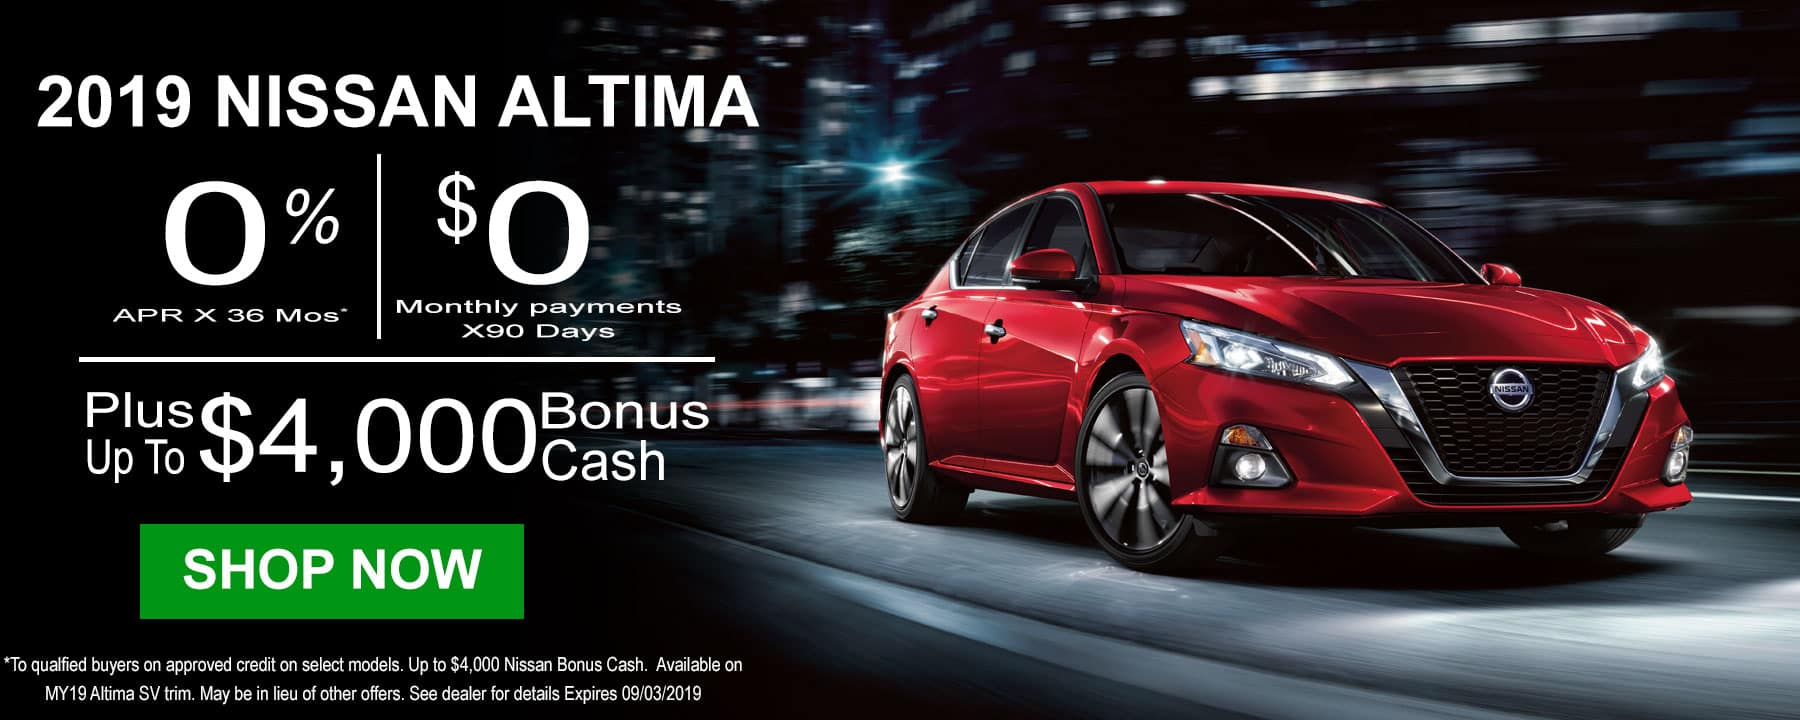 Take Advantage of up to $4,000 Nissan Bonus Cash and 0% APR on the 2019 Nissan Altima